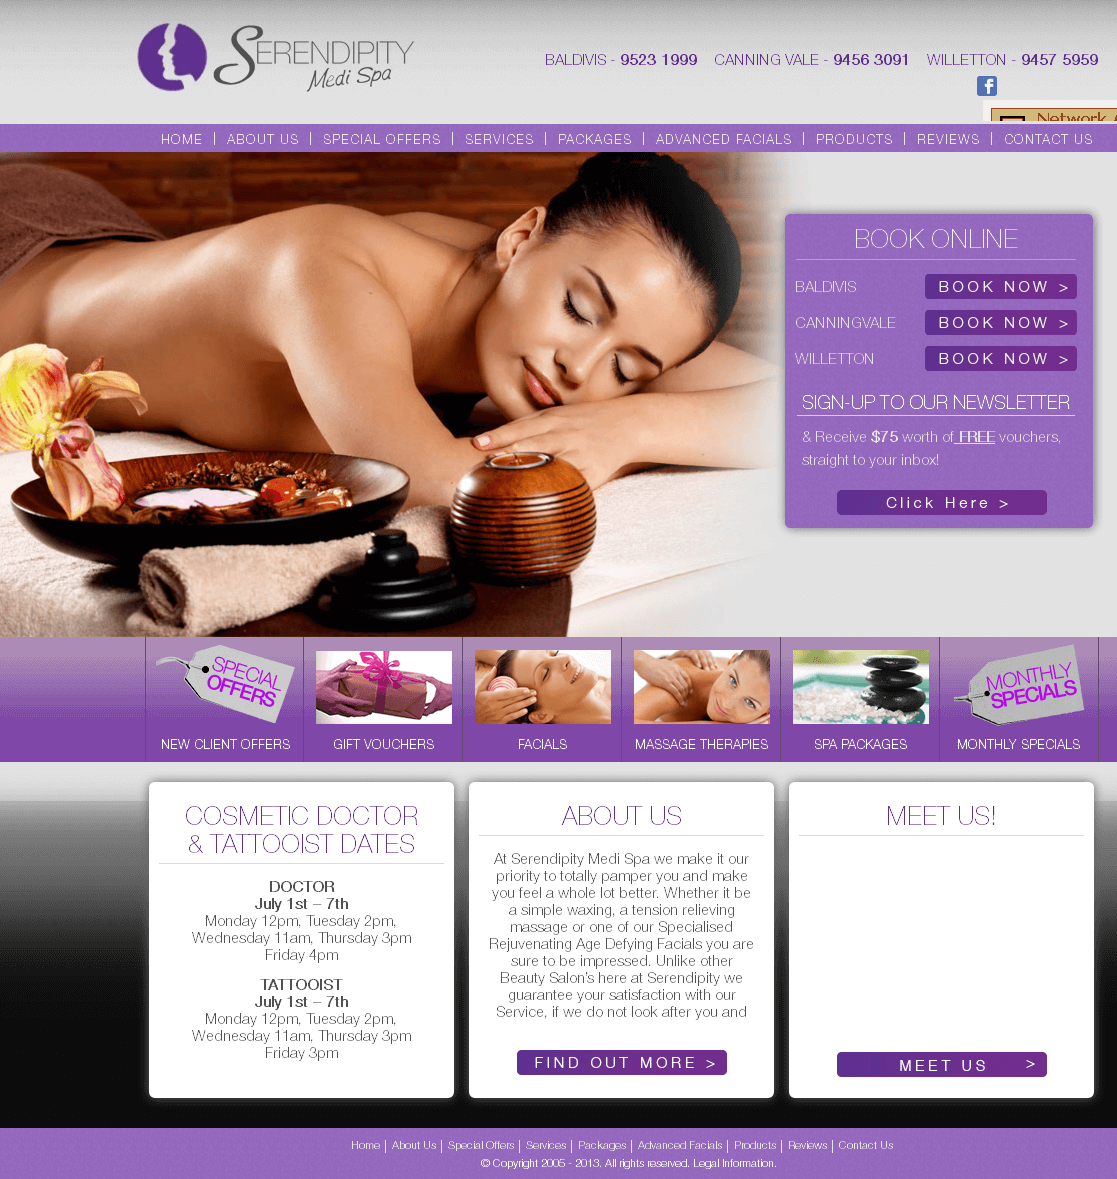 Website for Healthcare & Beauty Spa 'Serendipity' Using PHP